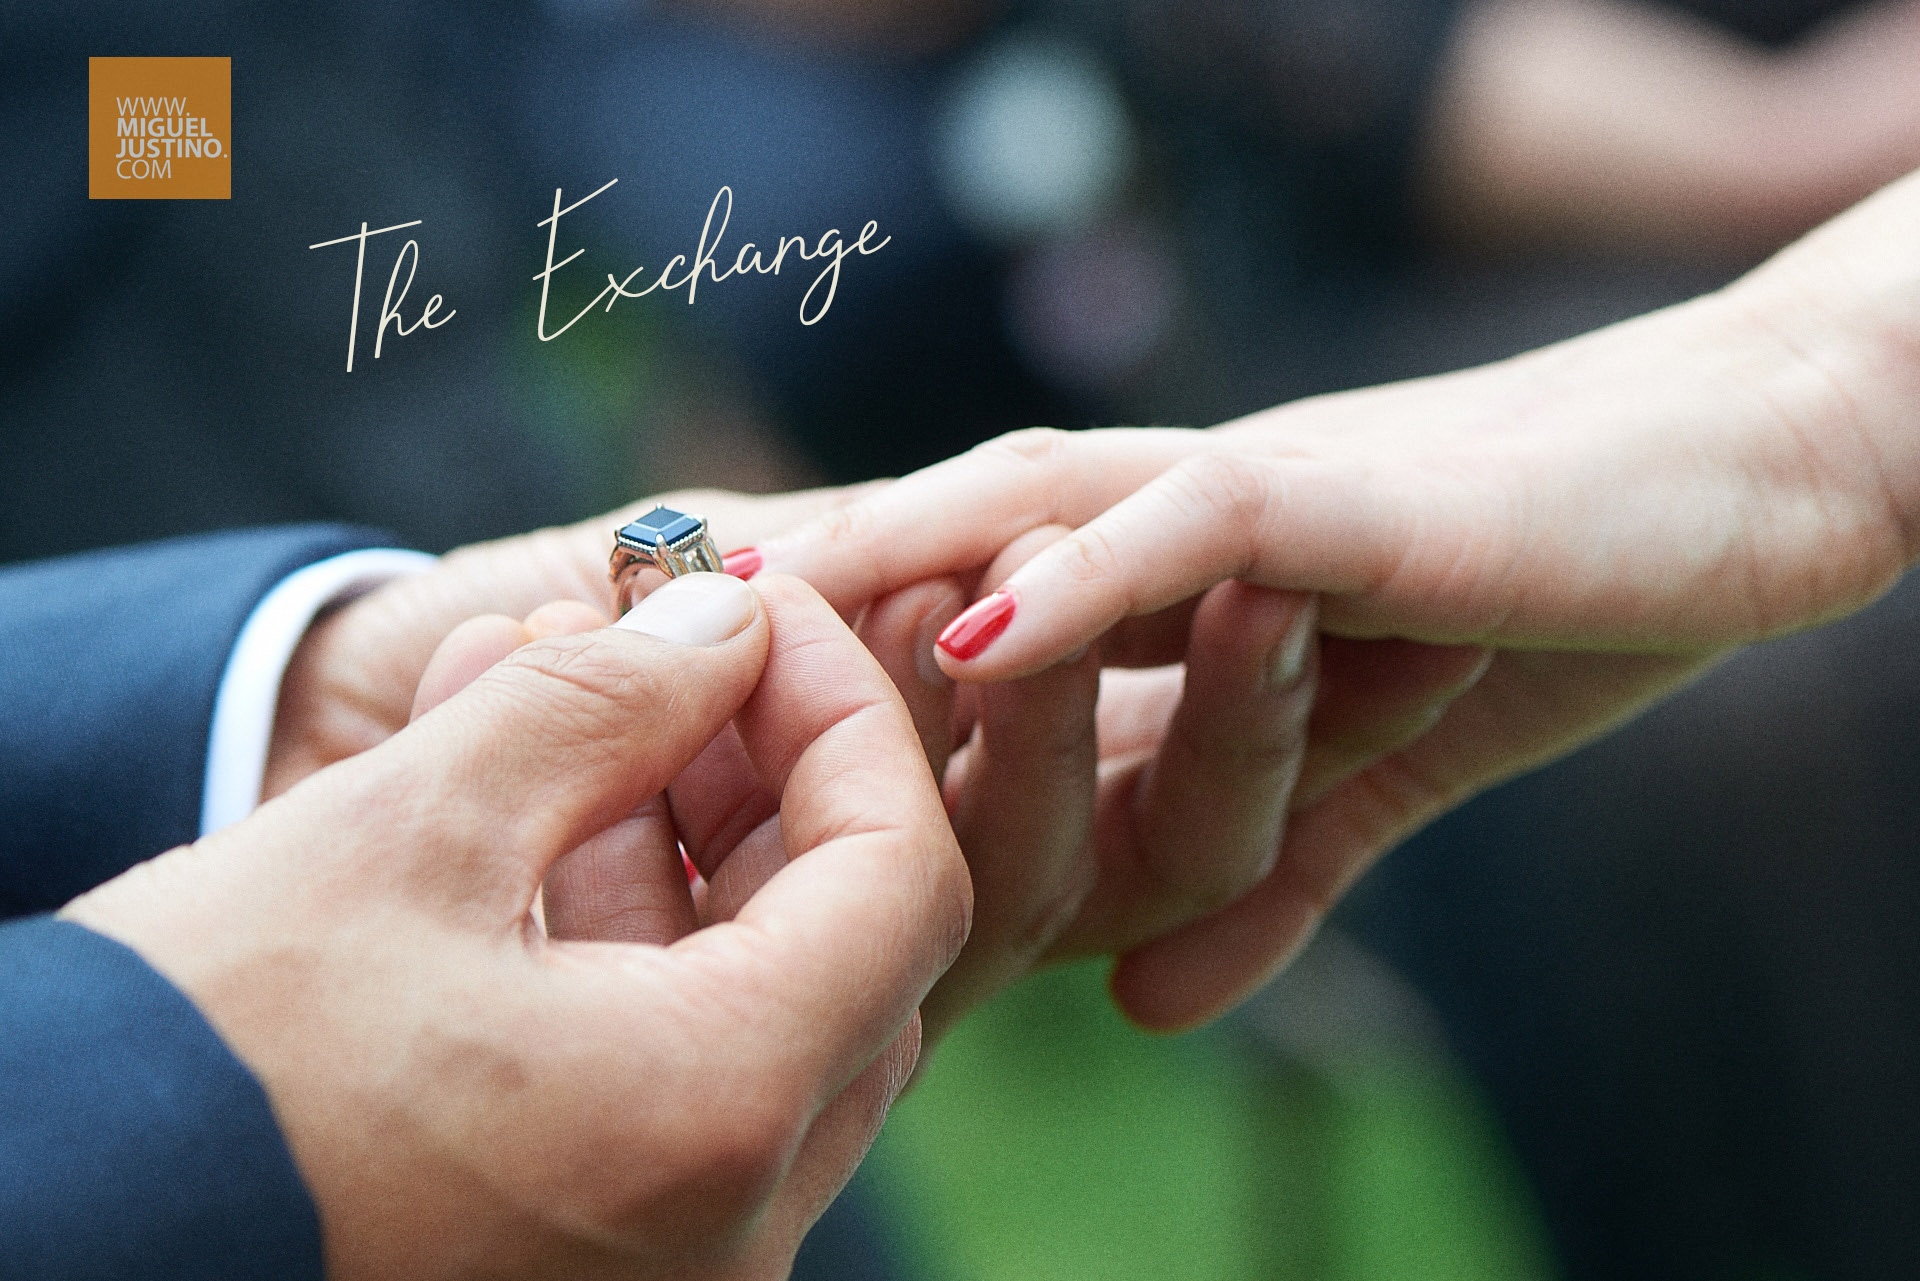 Exchanging rings, Wedding rings, wedding ideas,